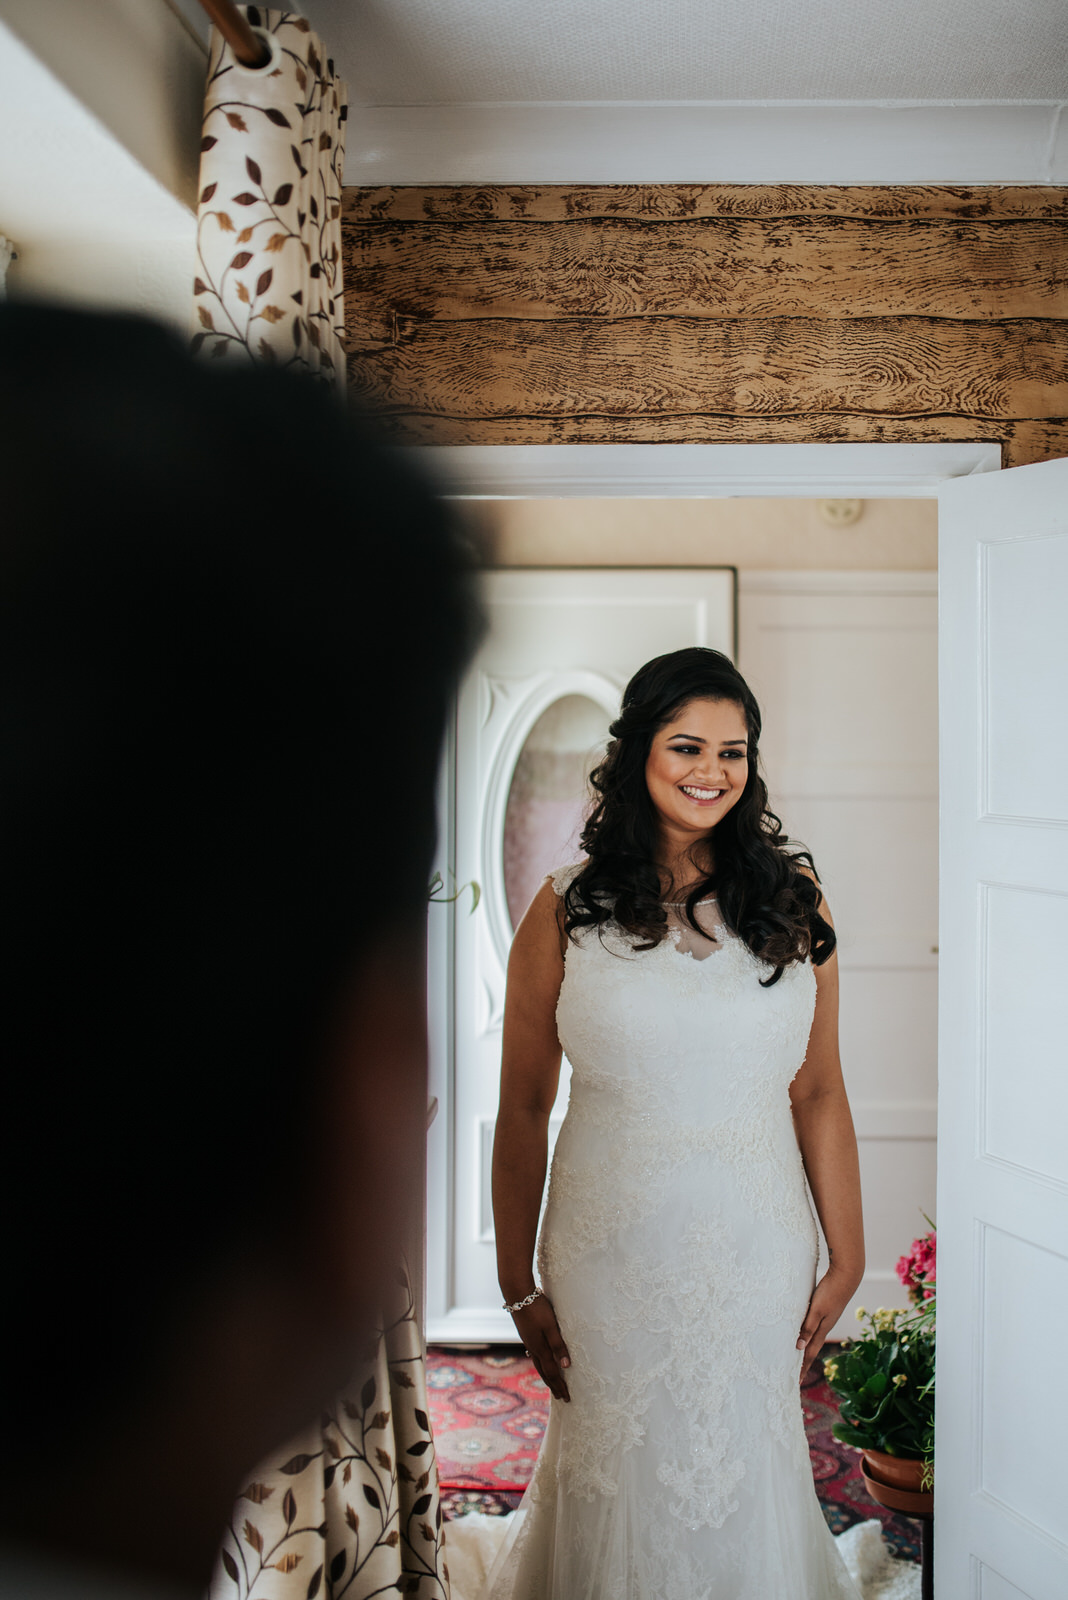 Bride smiles as she stands in front of family in her wedding dre